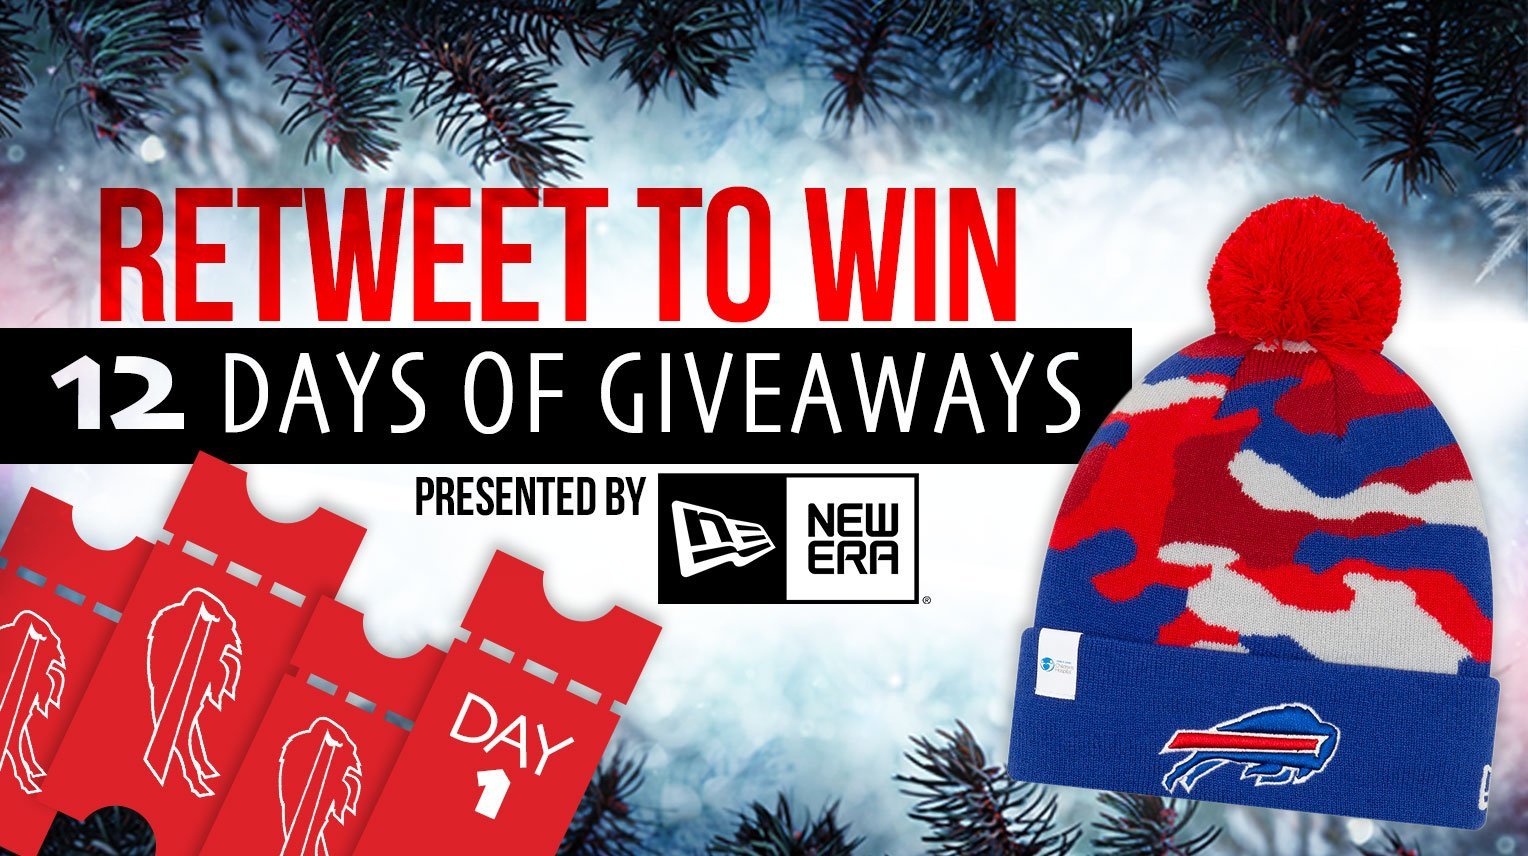 The @NewEraCap 12 Days of Giveaways starts NOW! ��  Rules: https://t.co/xrWvP1g1q3 https://t.co/QOag3adhKW